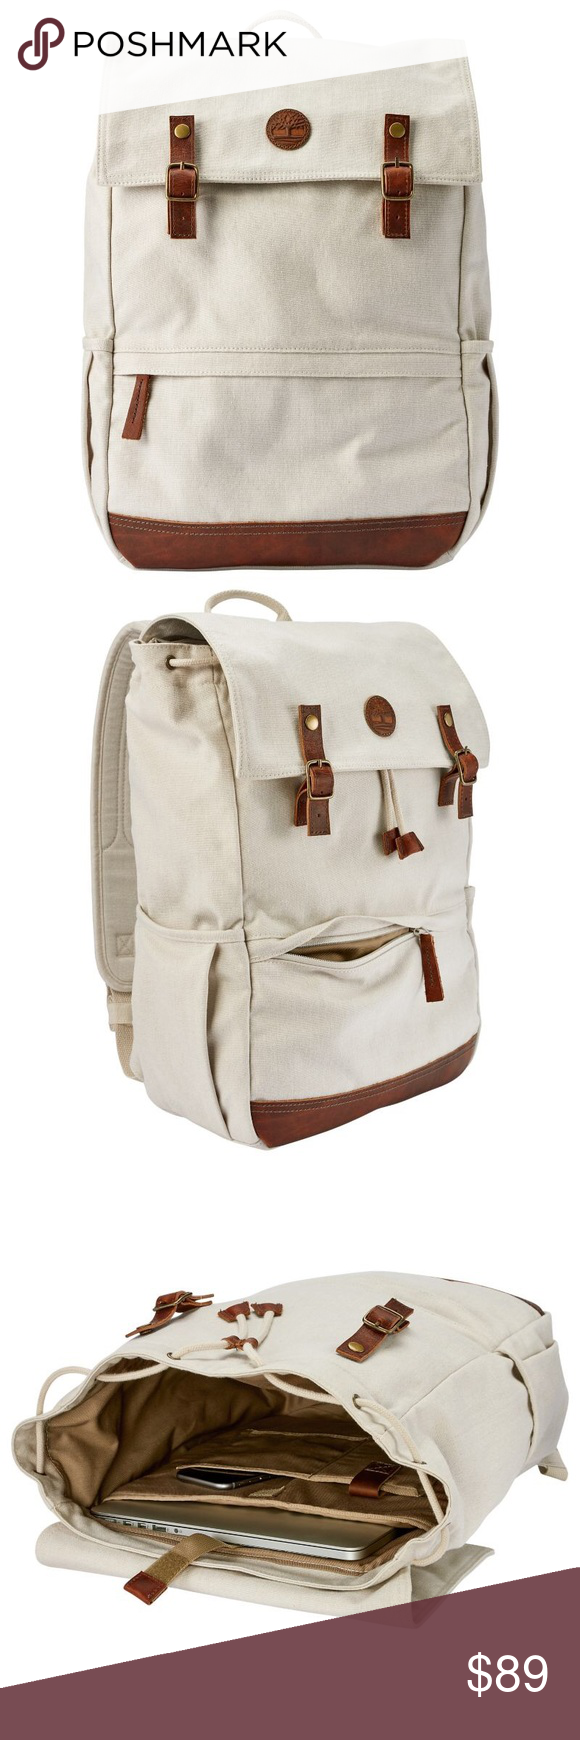 Timberland Ipswich Whitewashed Thread Backpack Timberland Ipswich  Whitewashed Thread Fabric Backpack A1LXC100 Off-White Canvas 293a308026118